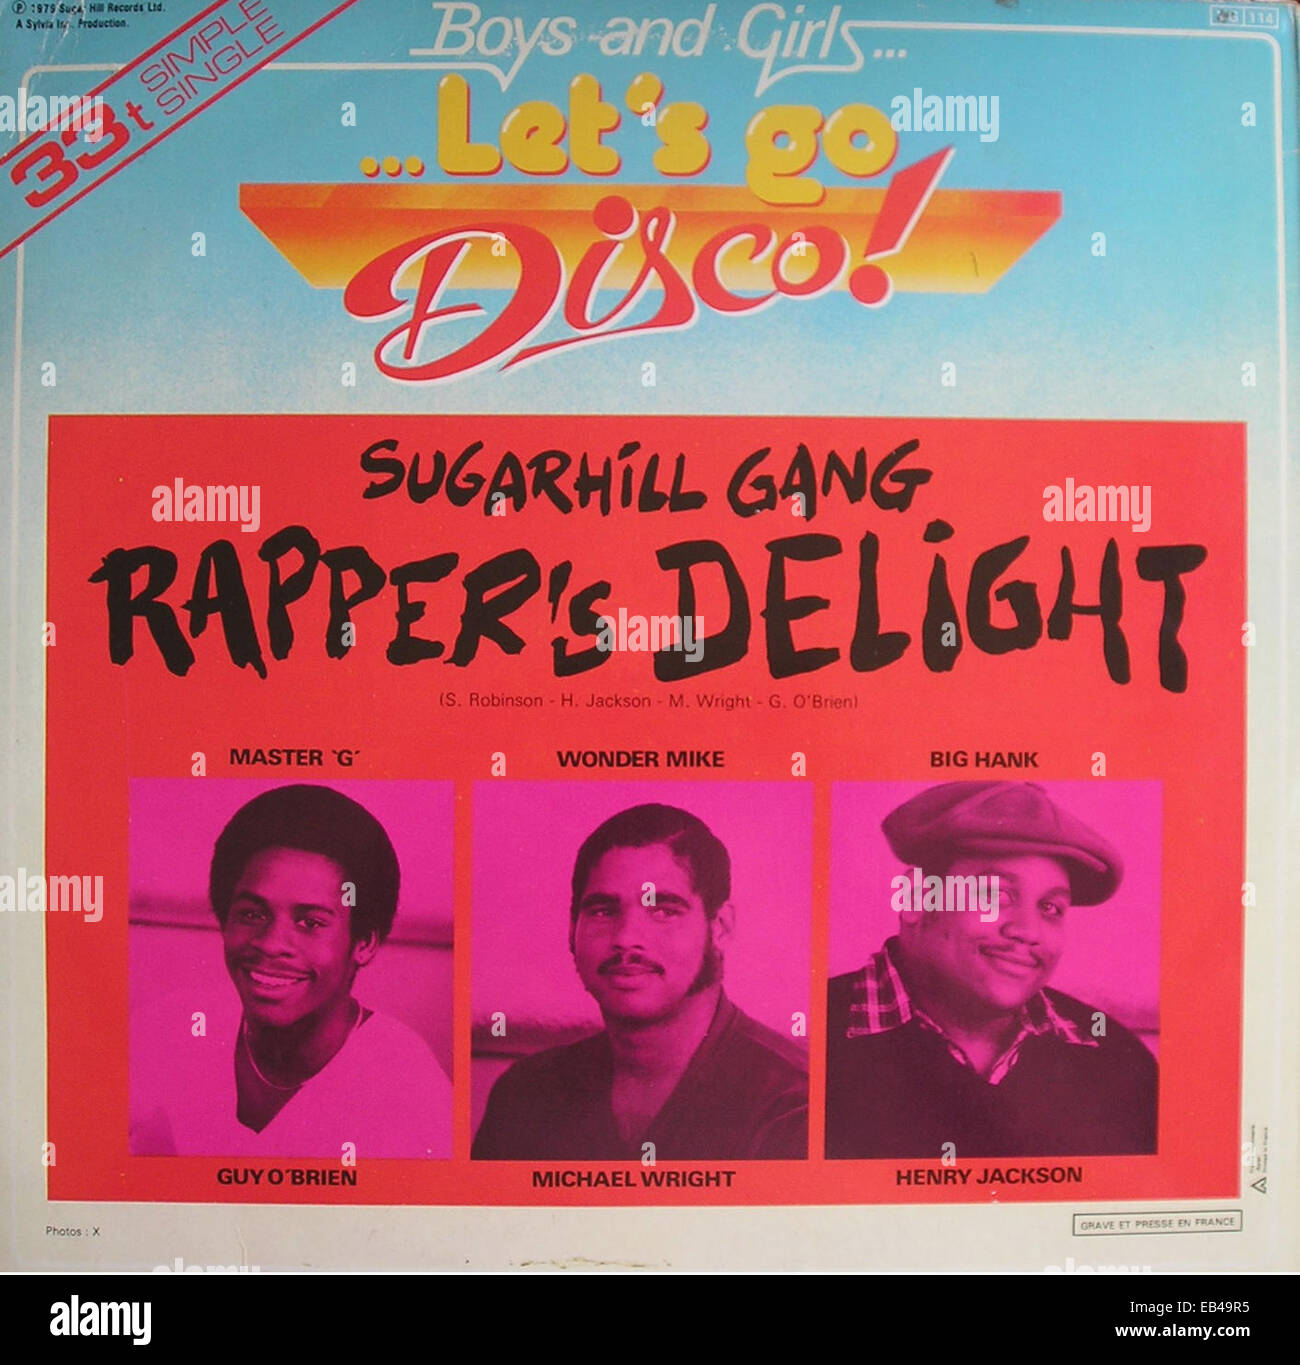 12' Single cover of 'Rapper's Delight' by Sugarhill Gang. - Stock Image